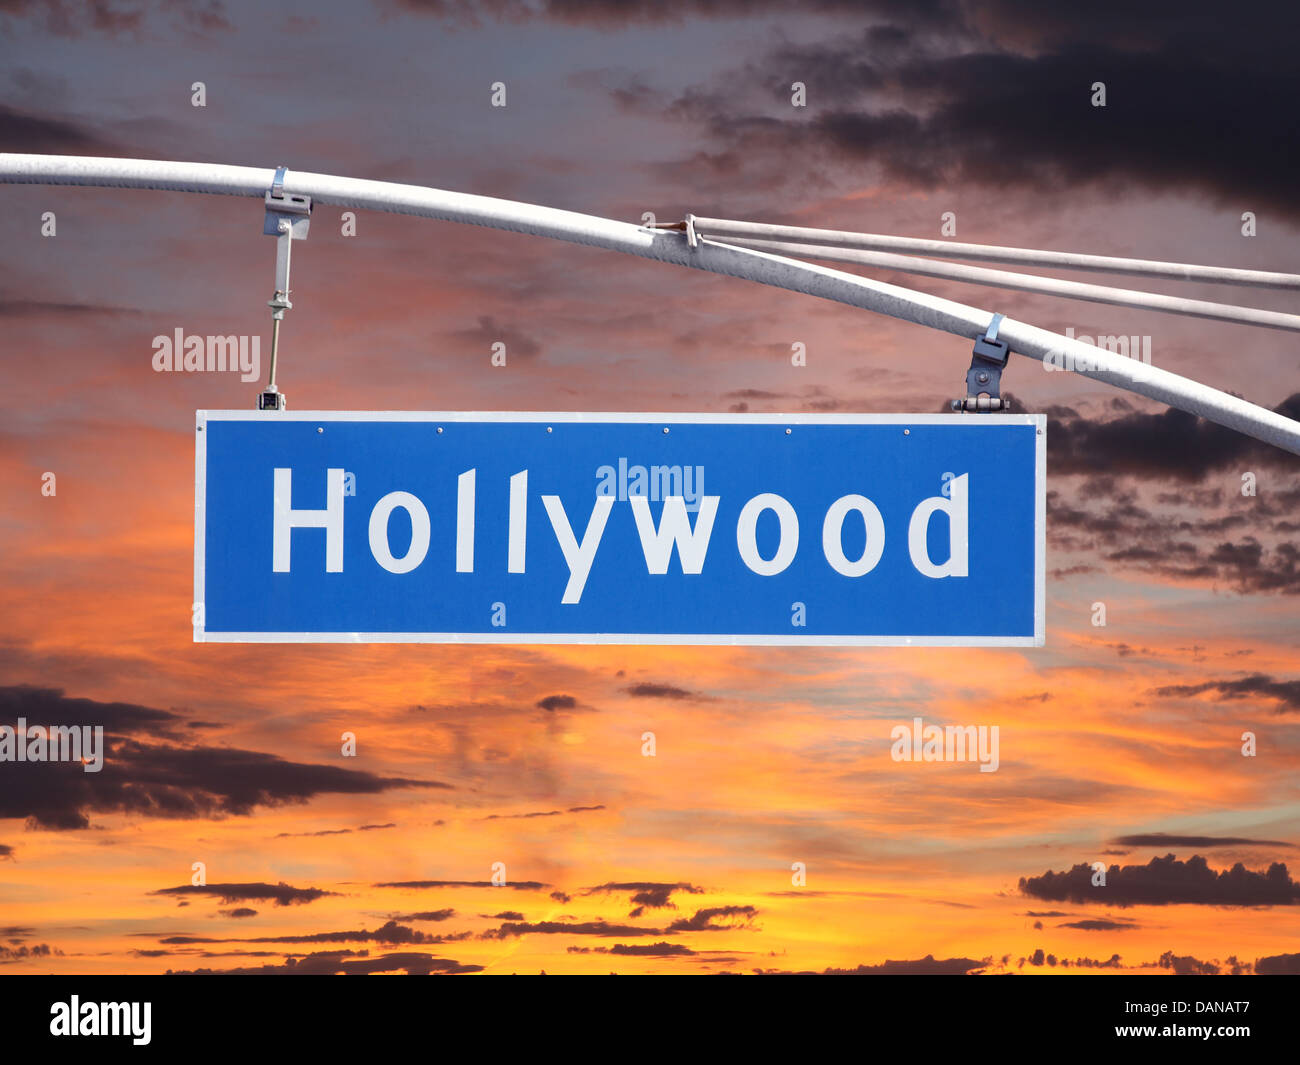 Hollywood Blvd overhead street sign with sunset sky. - Stock Image